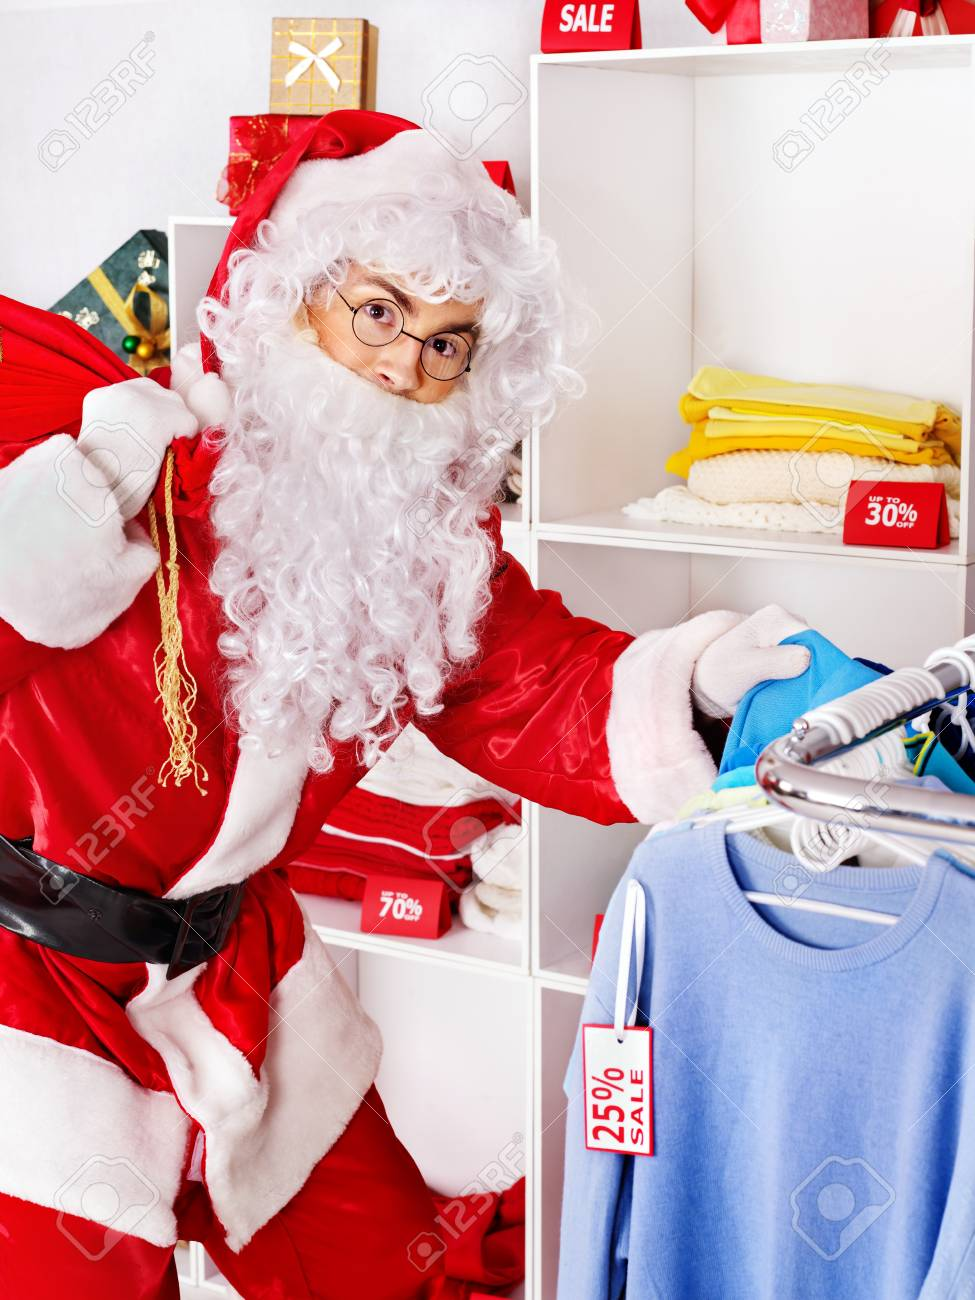 Santa Claus in clothing store. Christmas sale. Stock Photo - 16354973